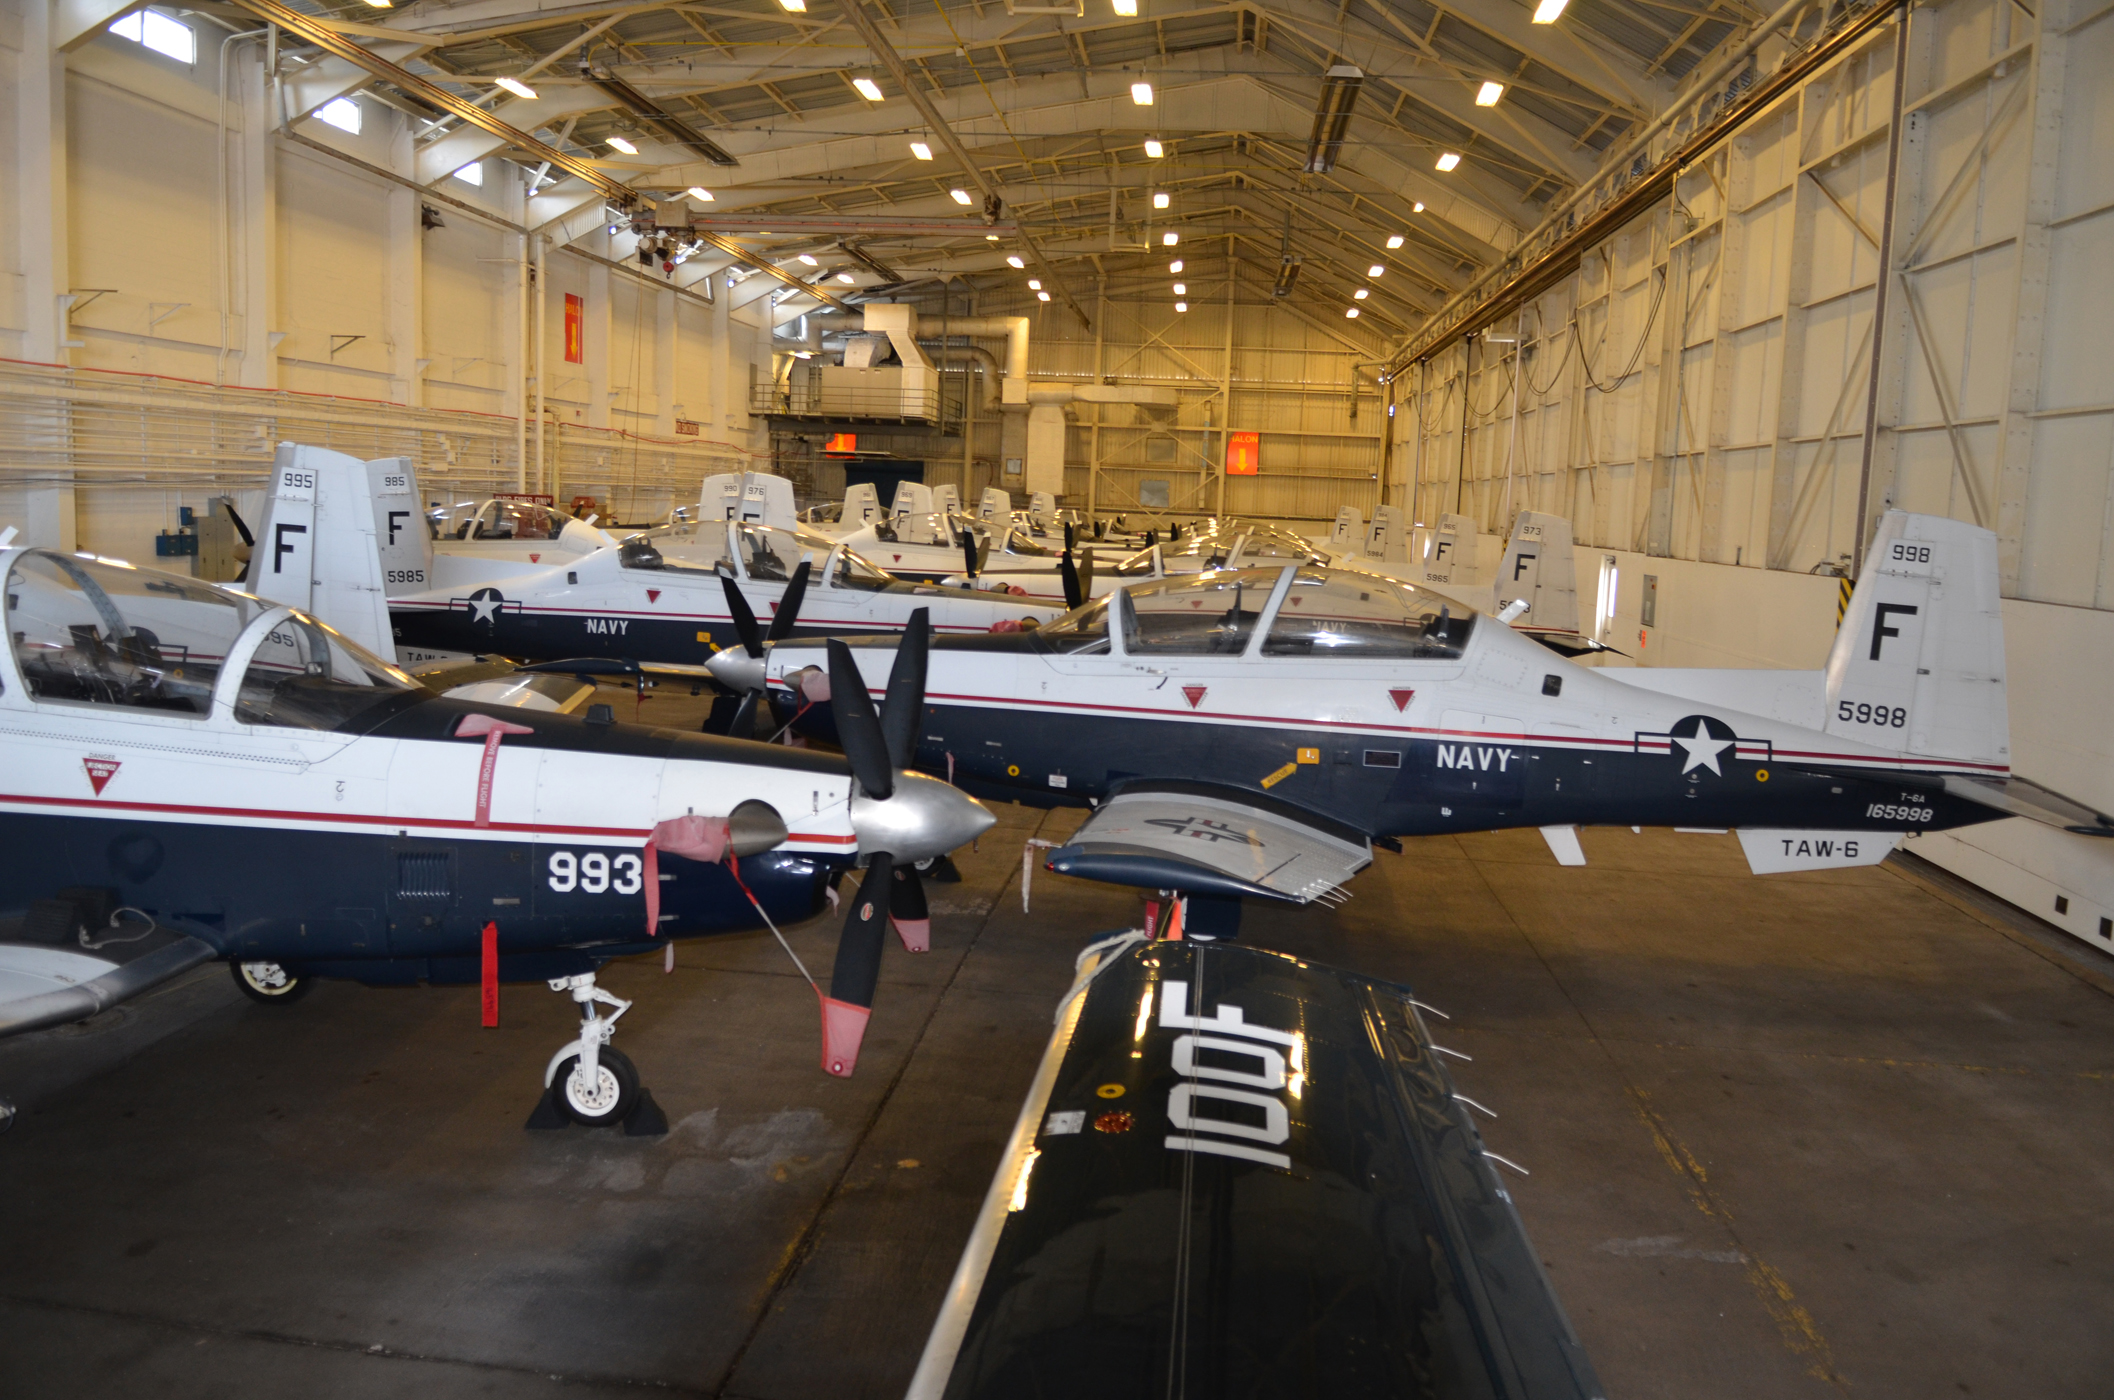 File:U.S. Navy T-6 Texan II aircraft assigned to Training ...